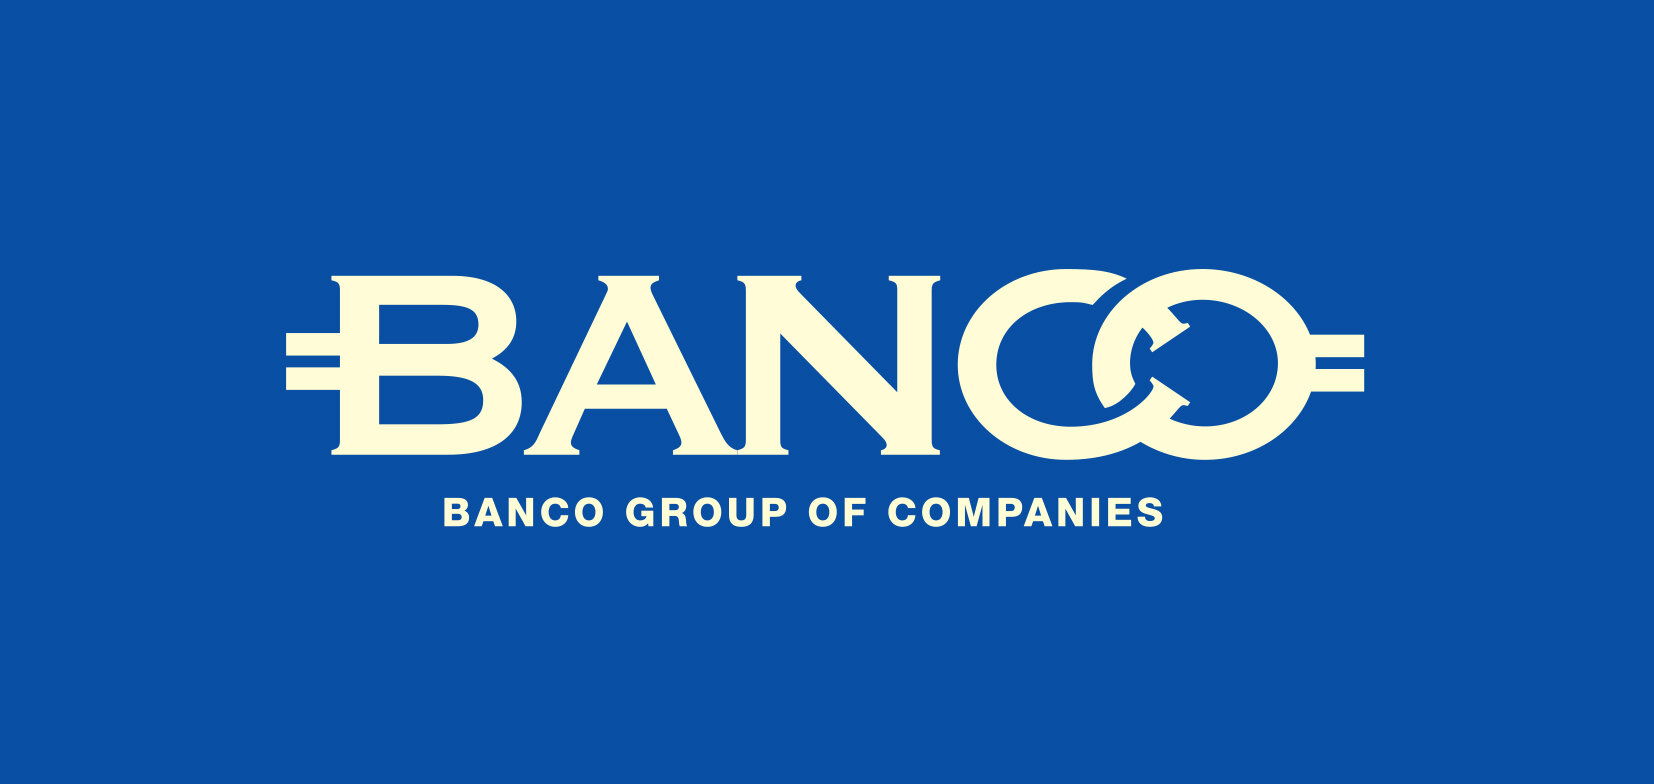 Banco Group